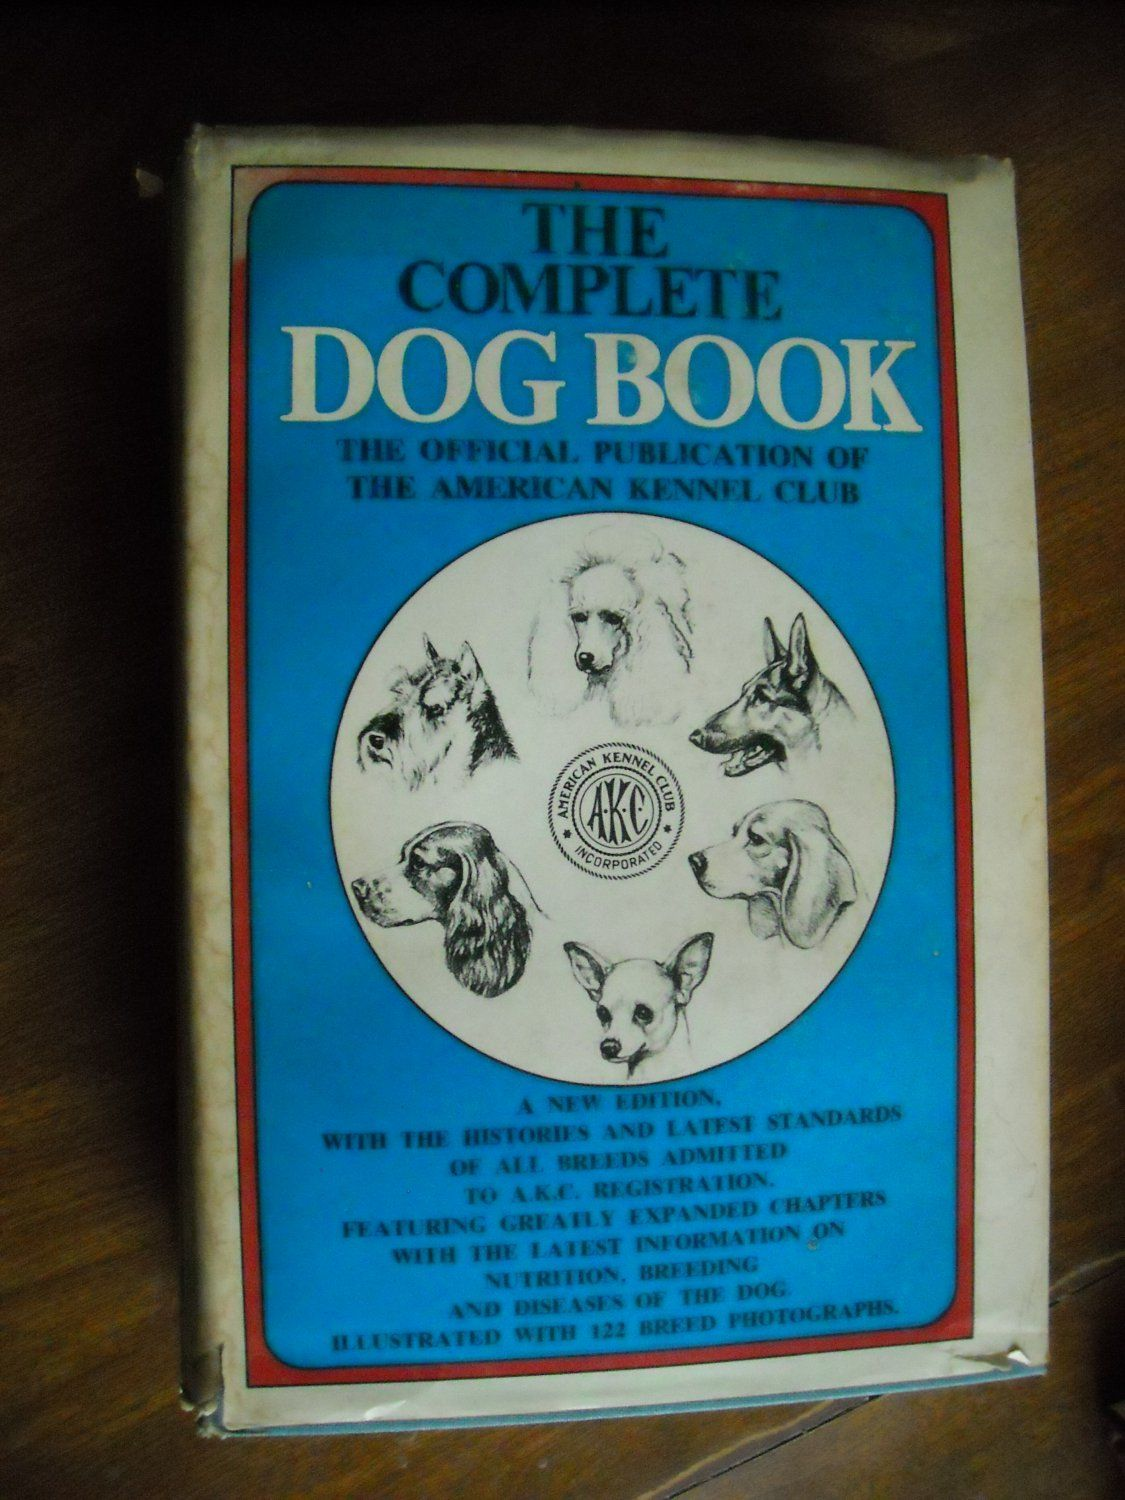 The Complete Dog Book Publication of the American Kennel Club For Sale At Wenzel Thrifty Nickel ecrater store